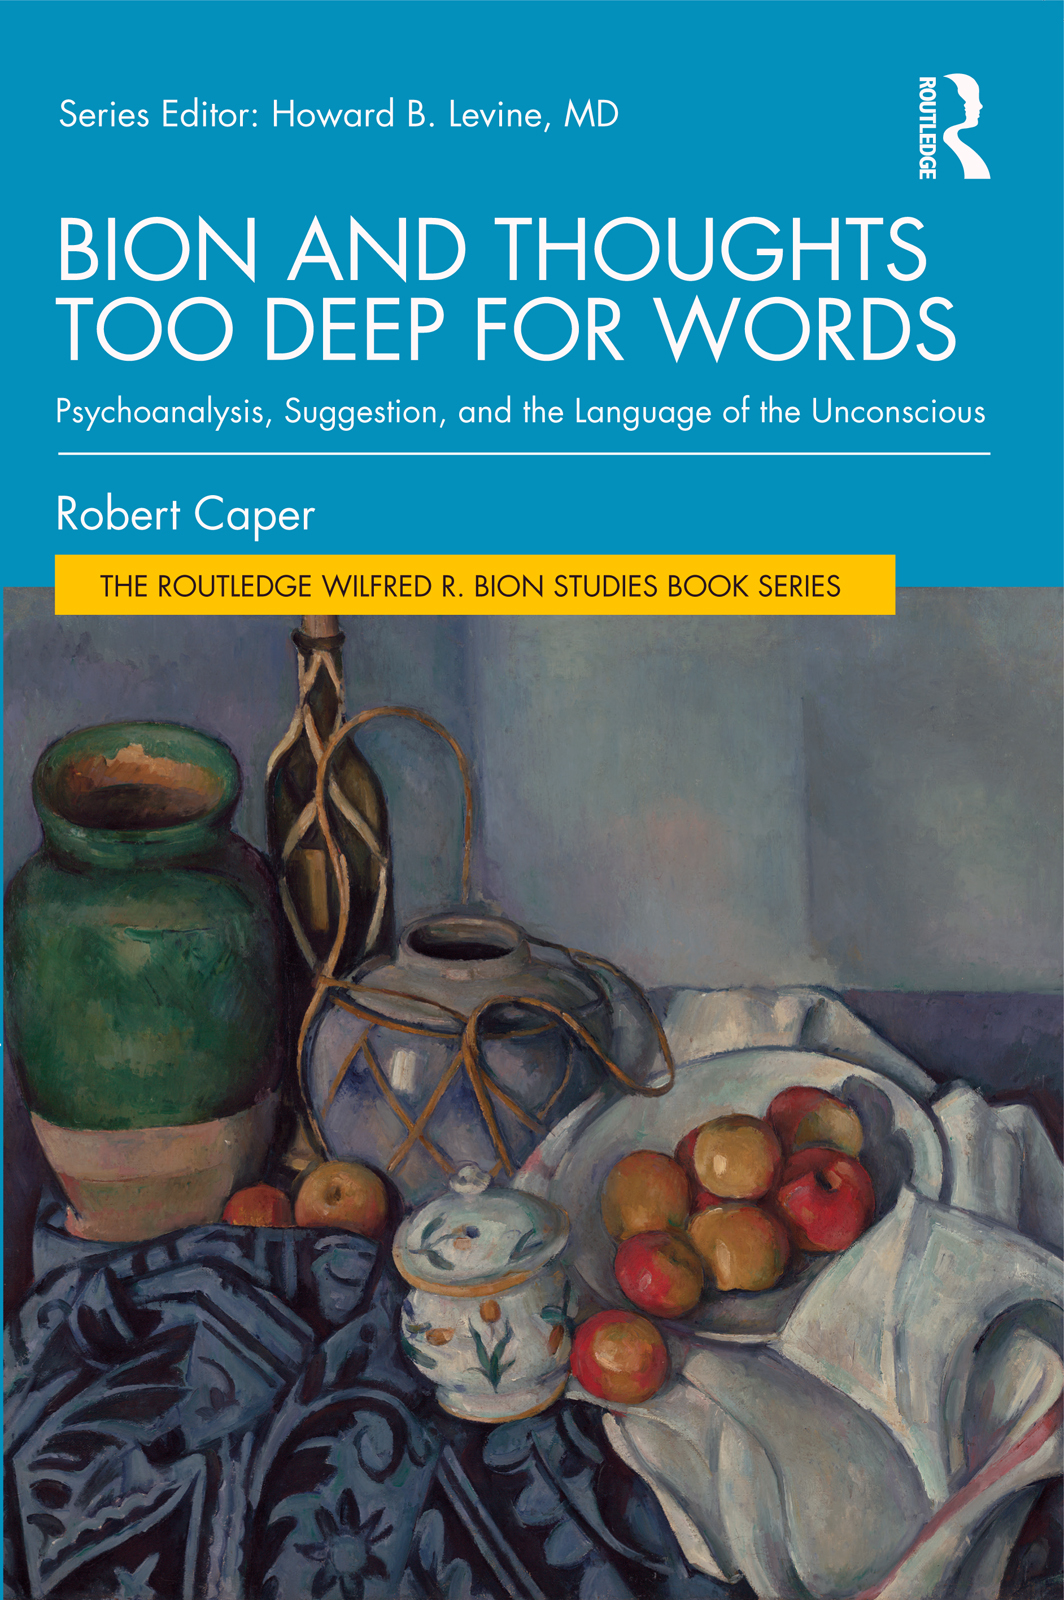 Bion and Thoughts Too Deep for Words: Psychoanalysis, Suggestion, and the Language of the Unconscious book cover